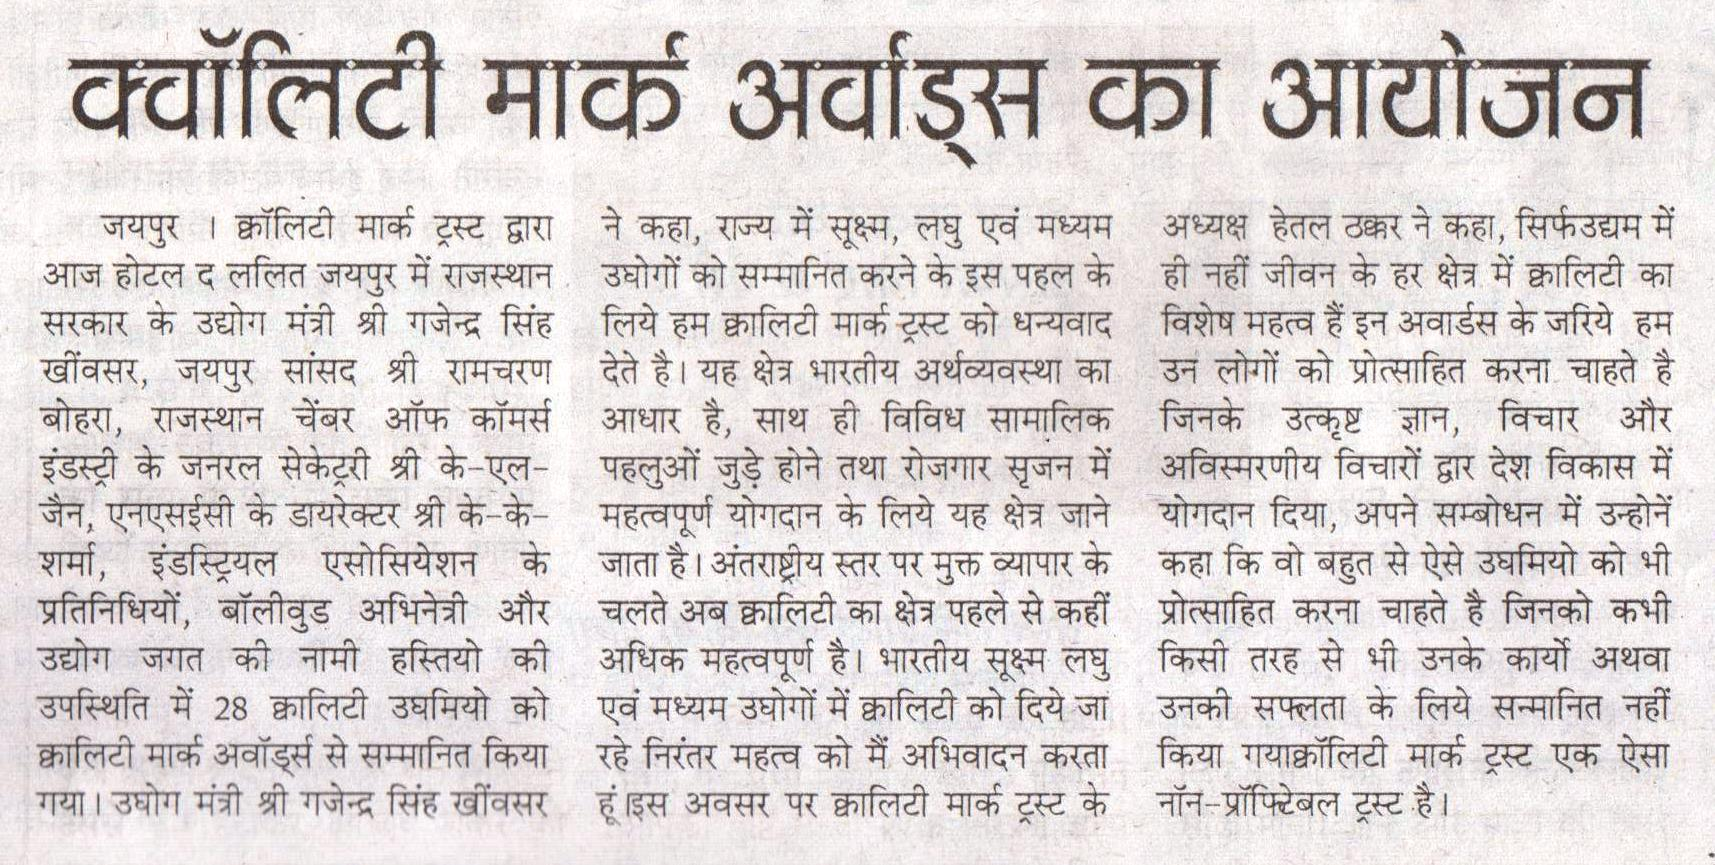 Dainik Great Rajasthan-27 April, 2015